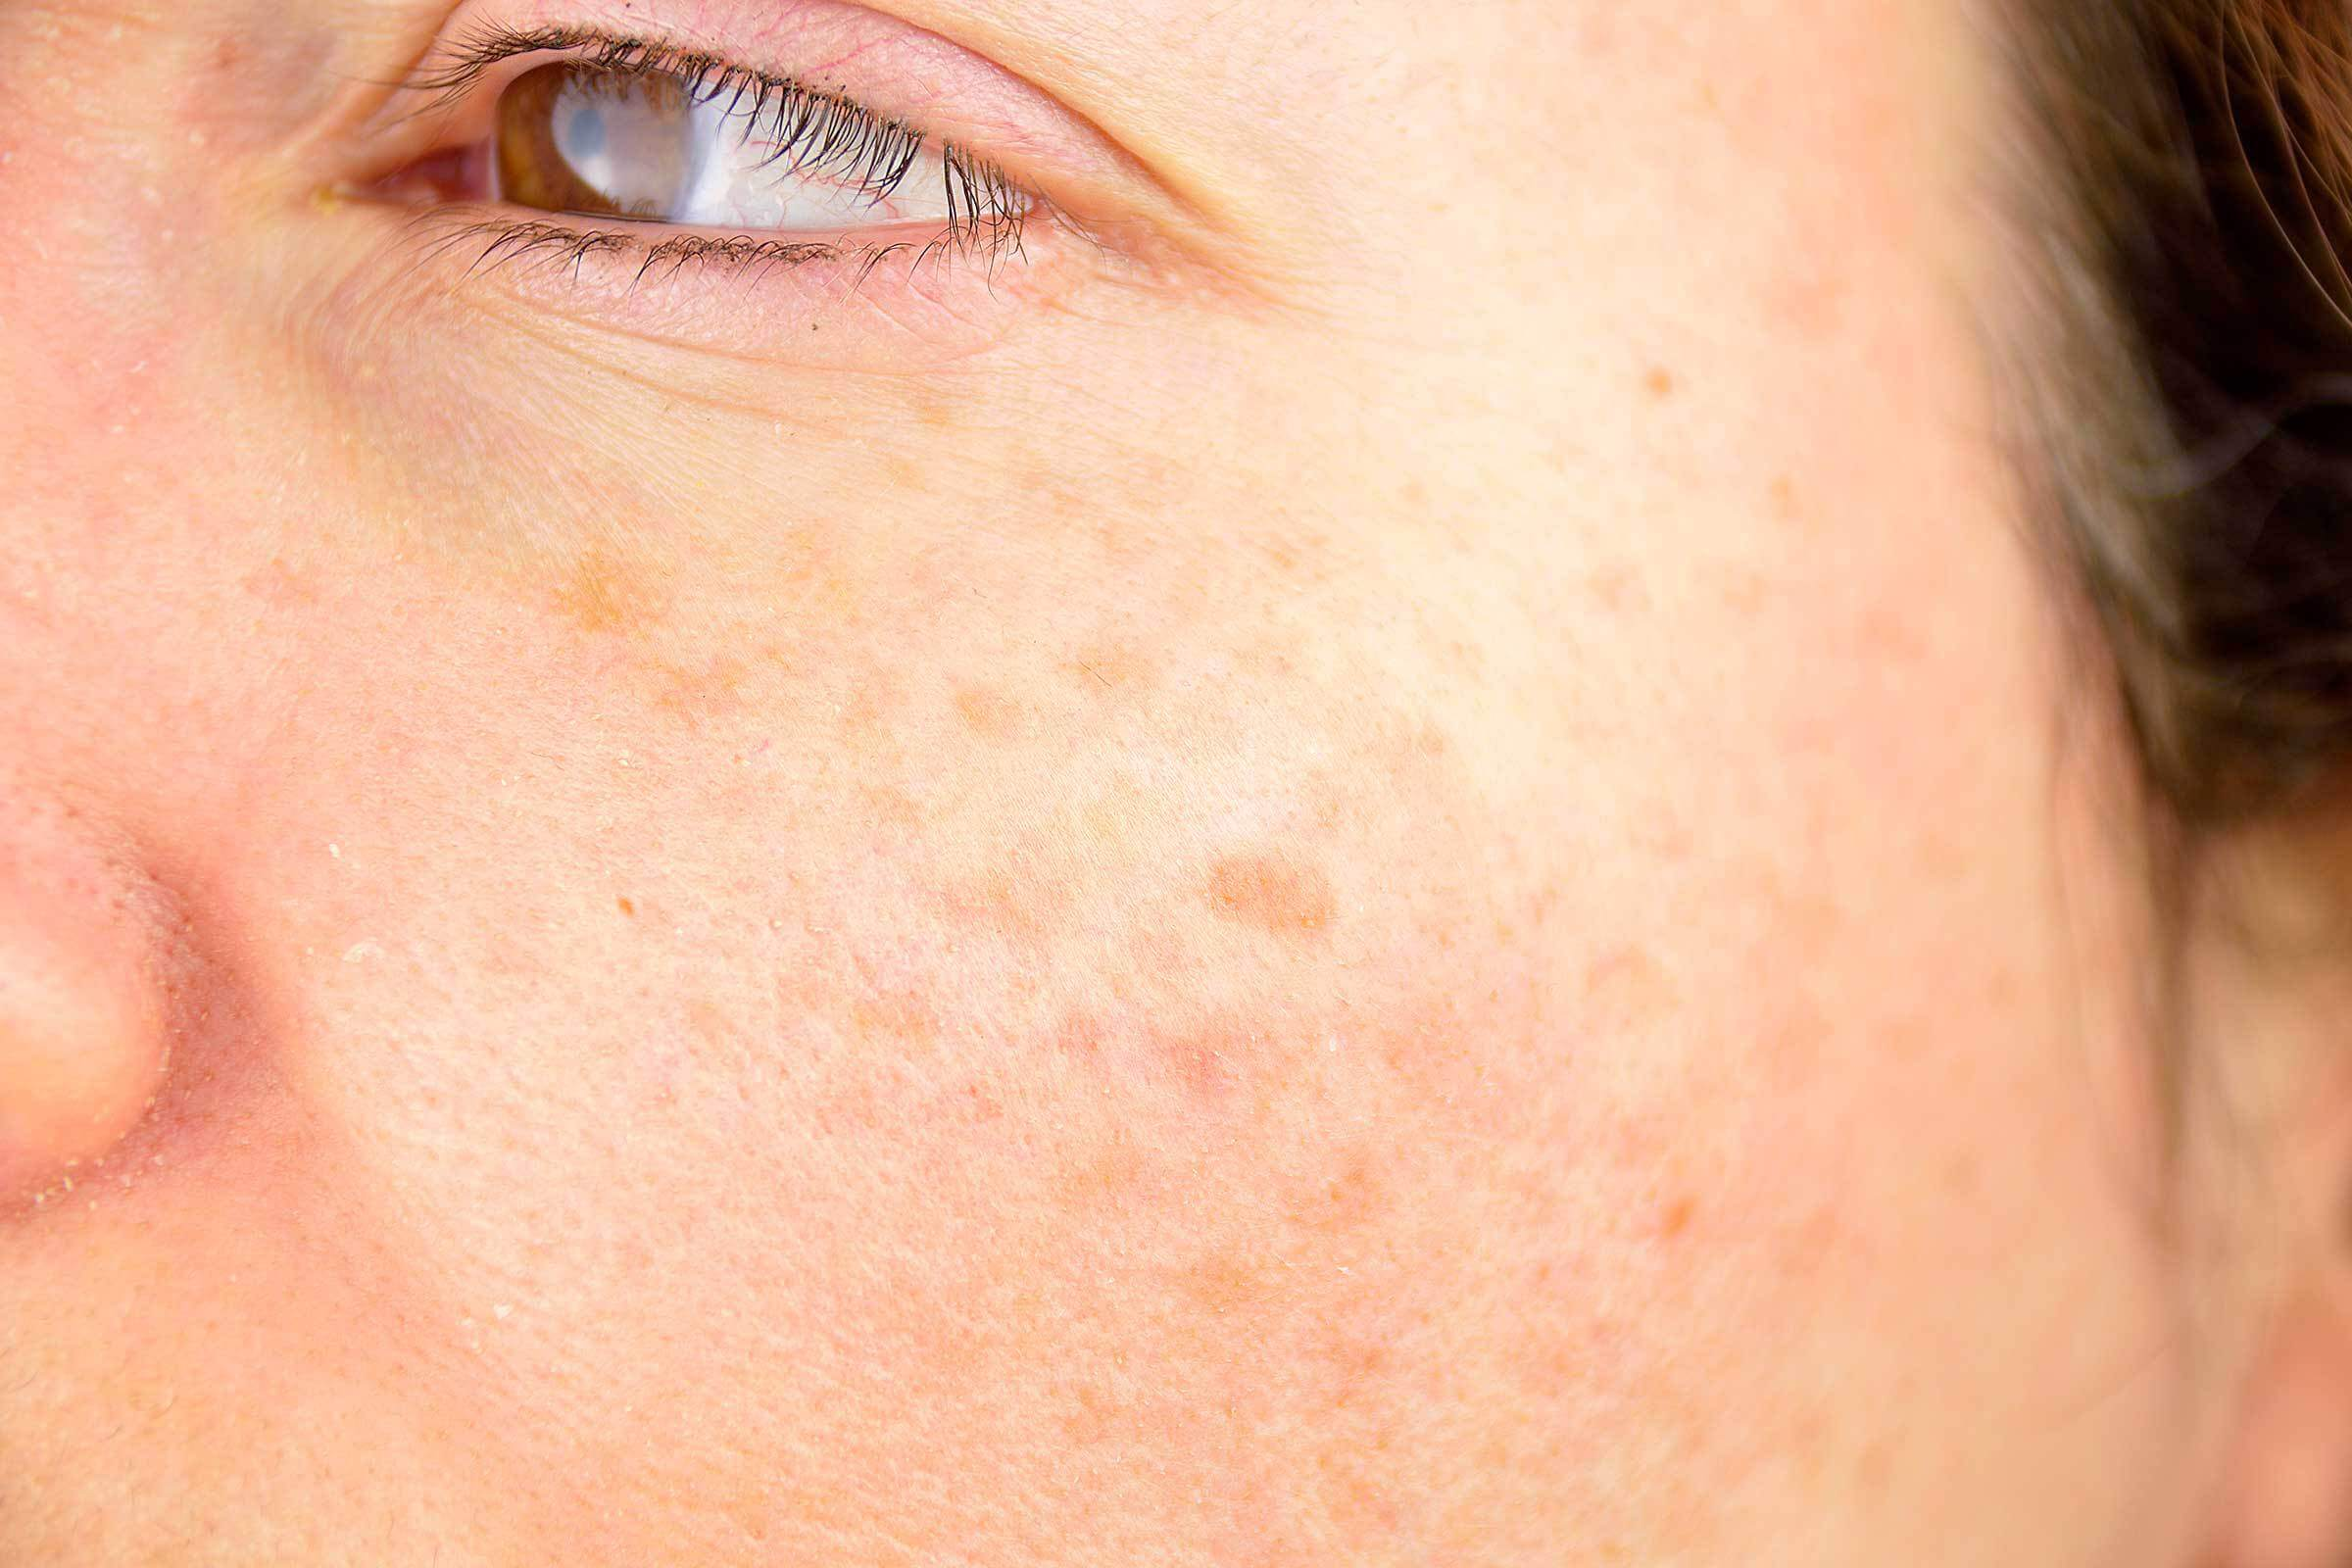 Age Spots - Early Signs of Aging